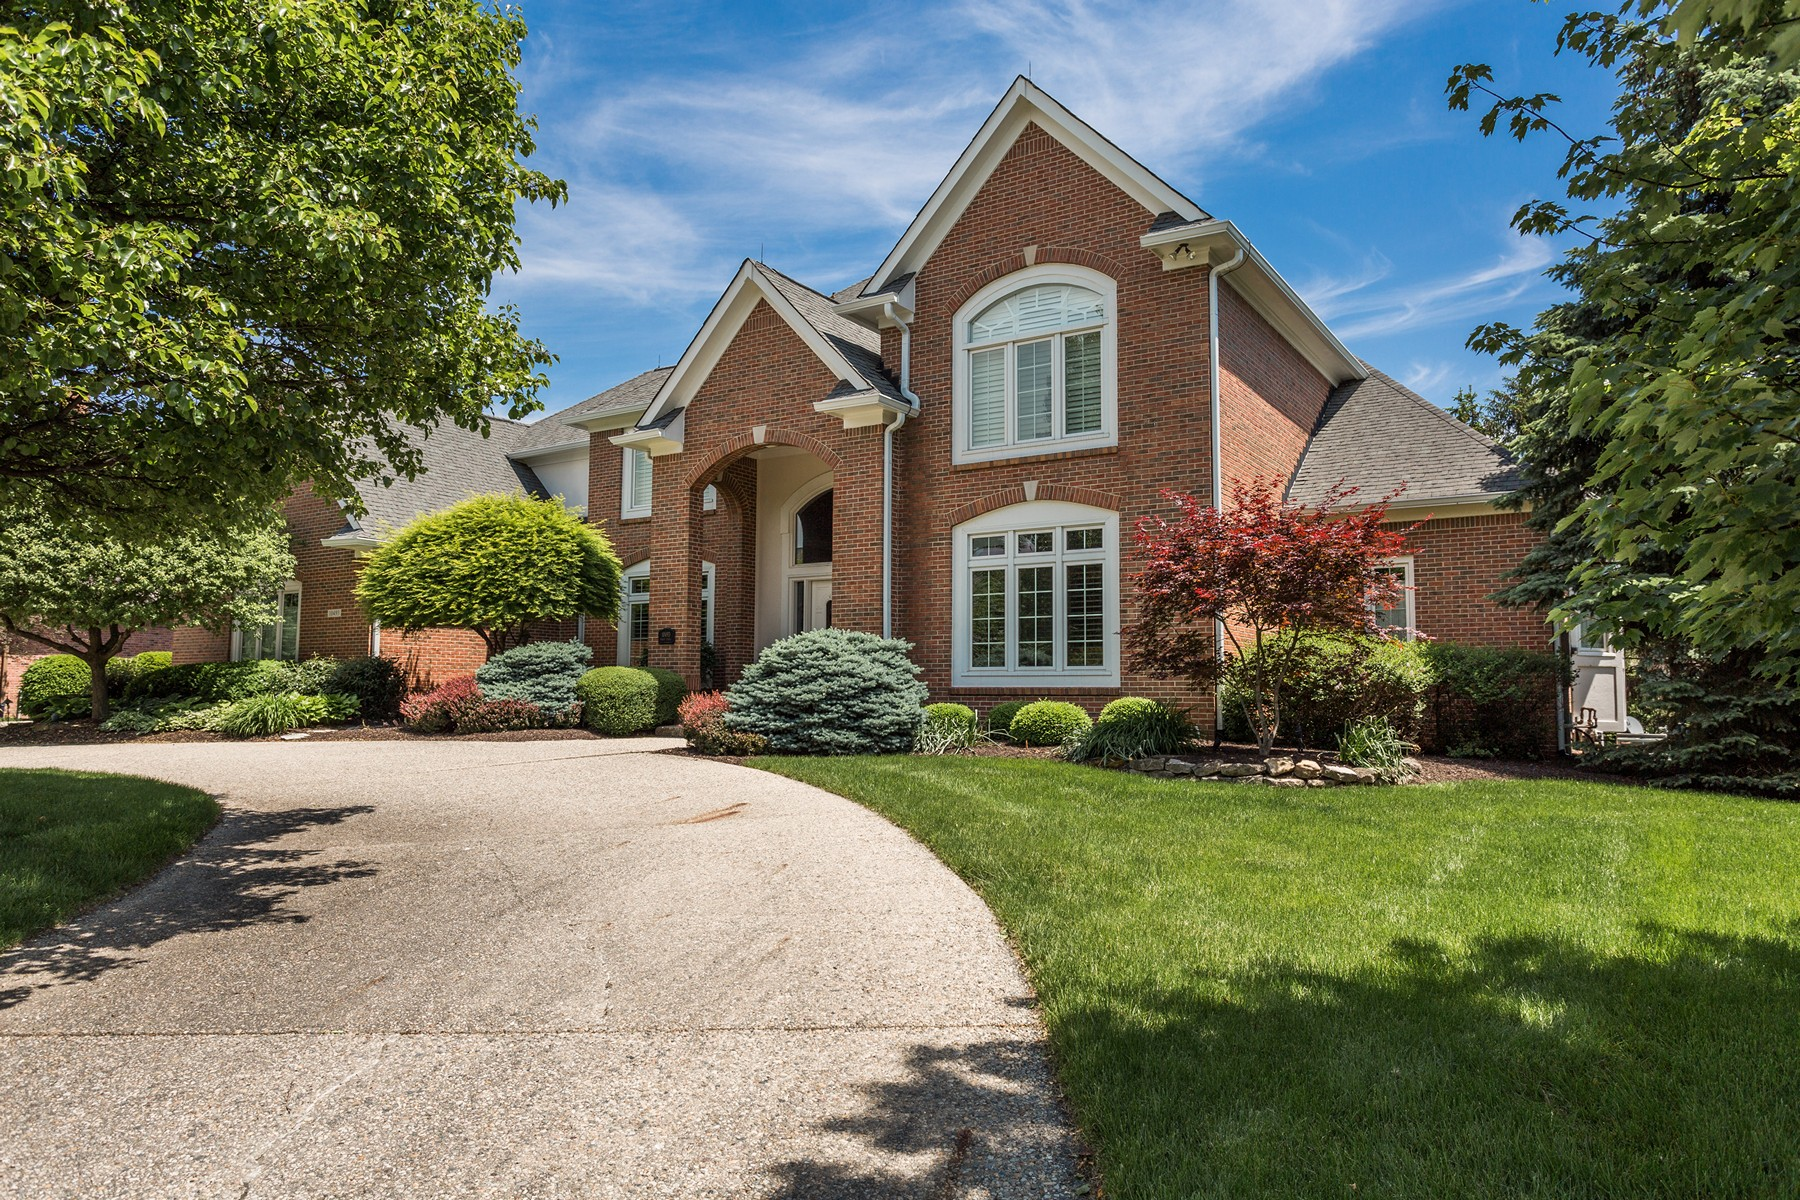 Single Family Home for Sale at Extraordinary One Owner Home 10493 Bishop Circle Carmel, Indiana, 46032 United States